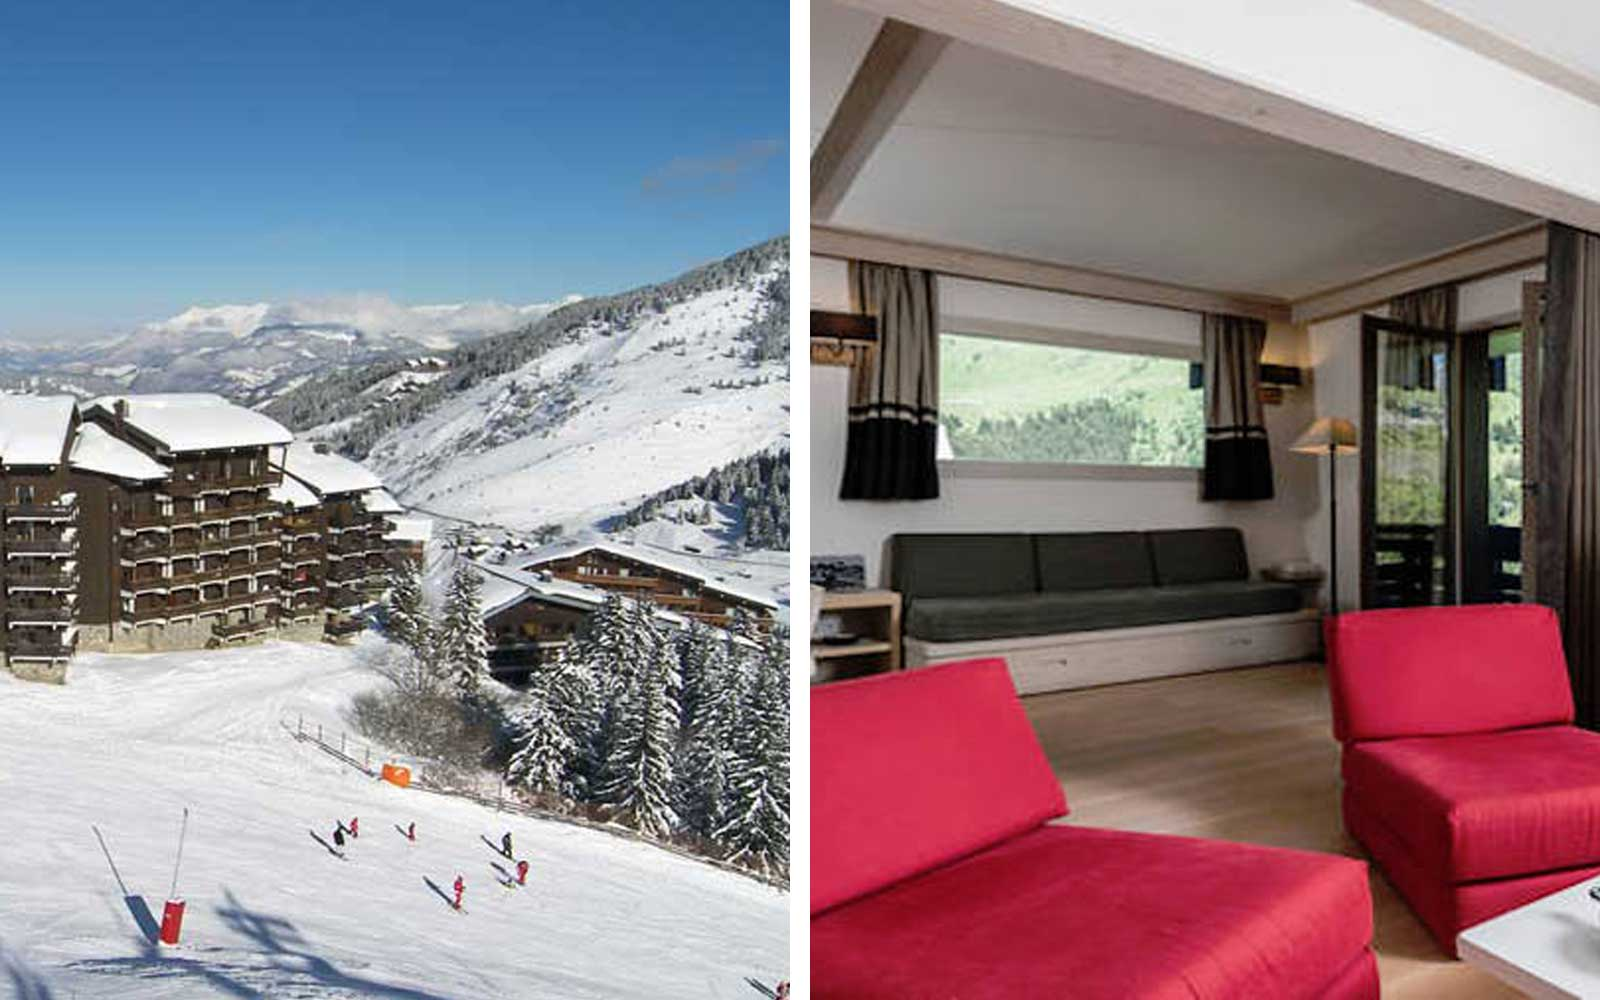 Luxurious Ski Trips